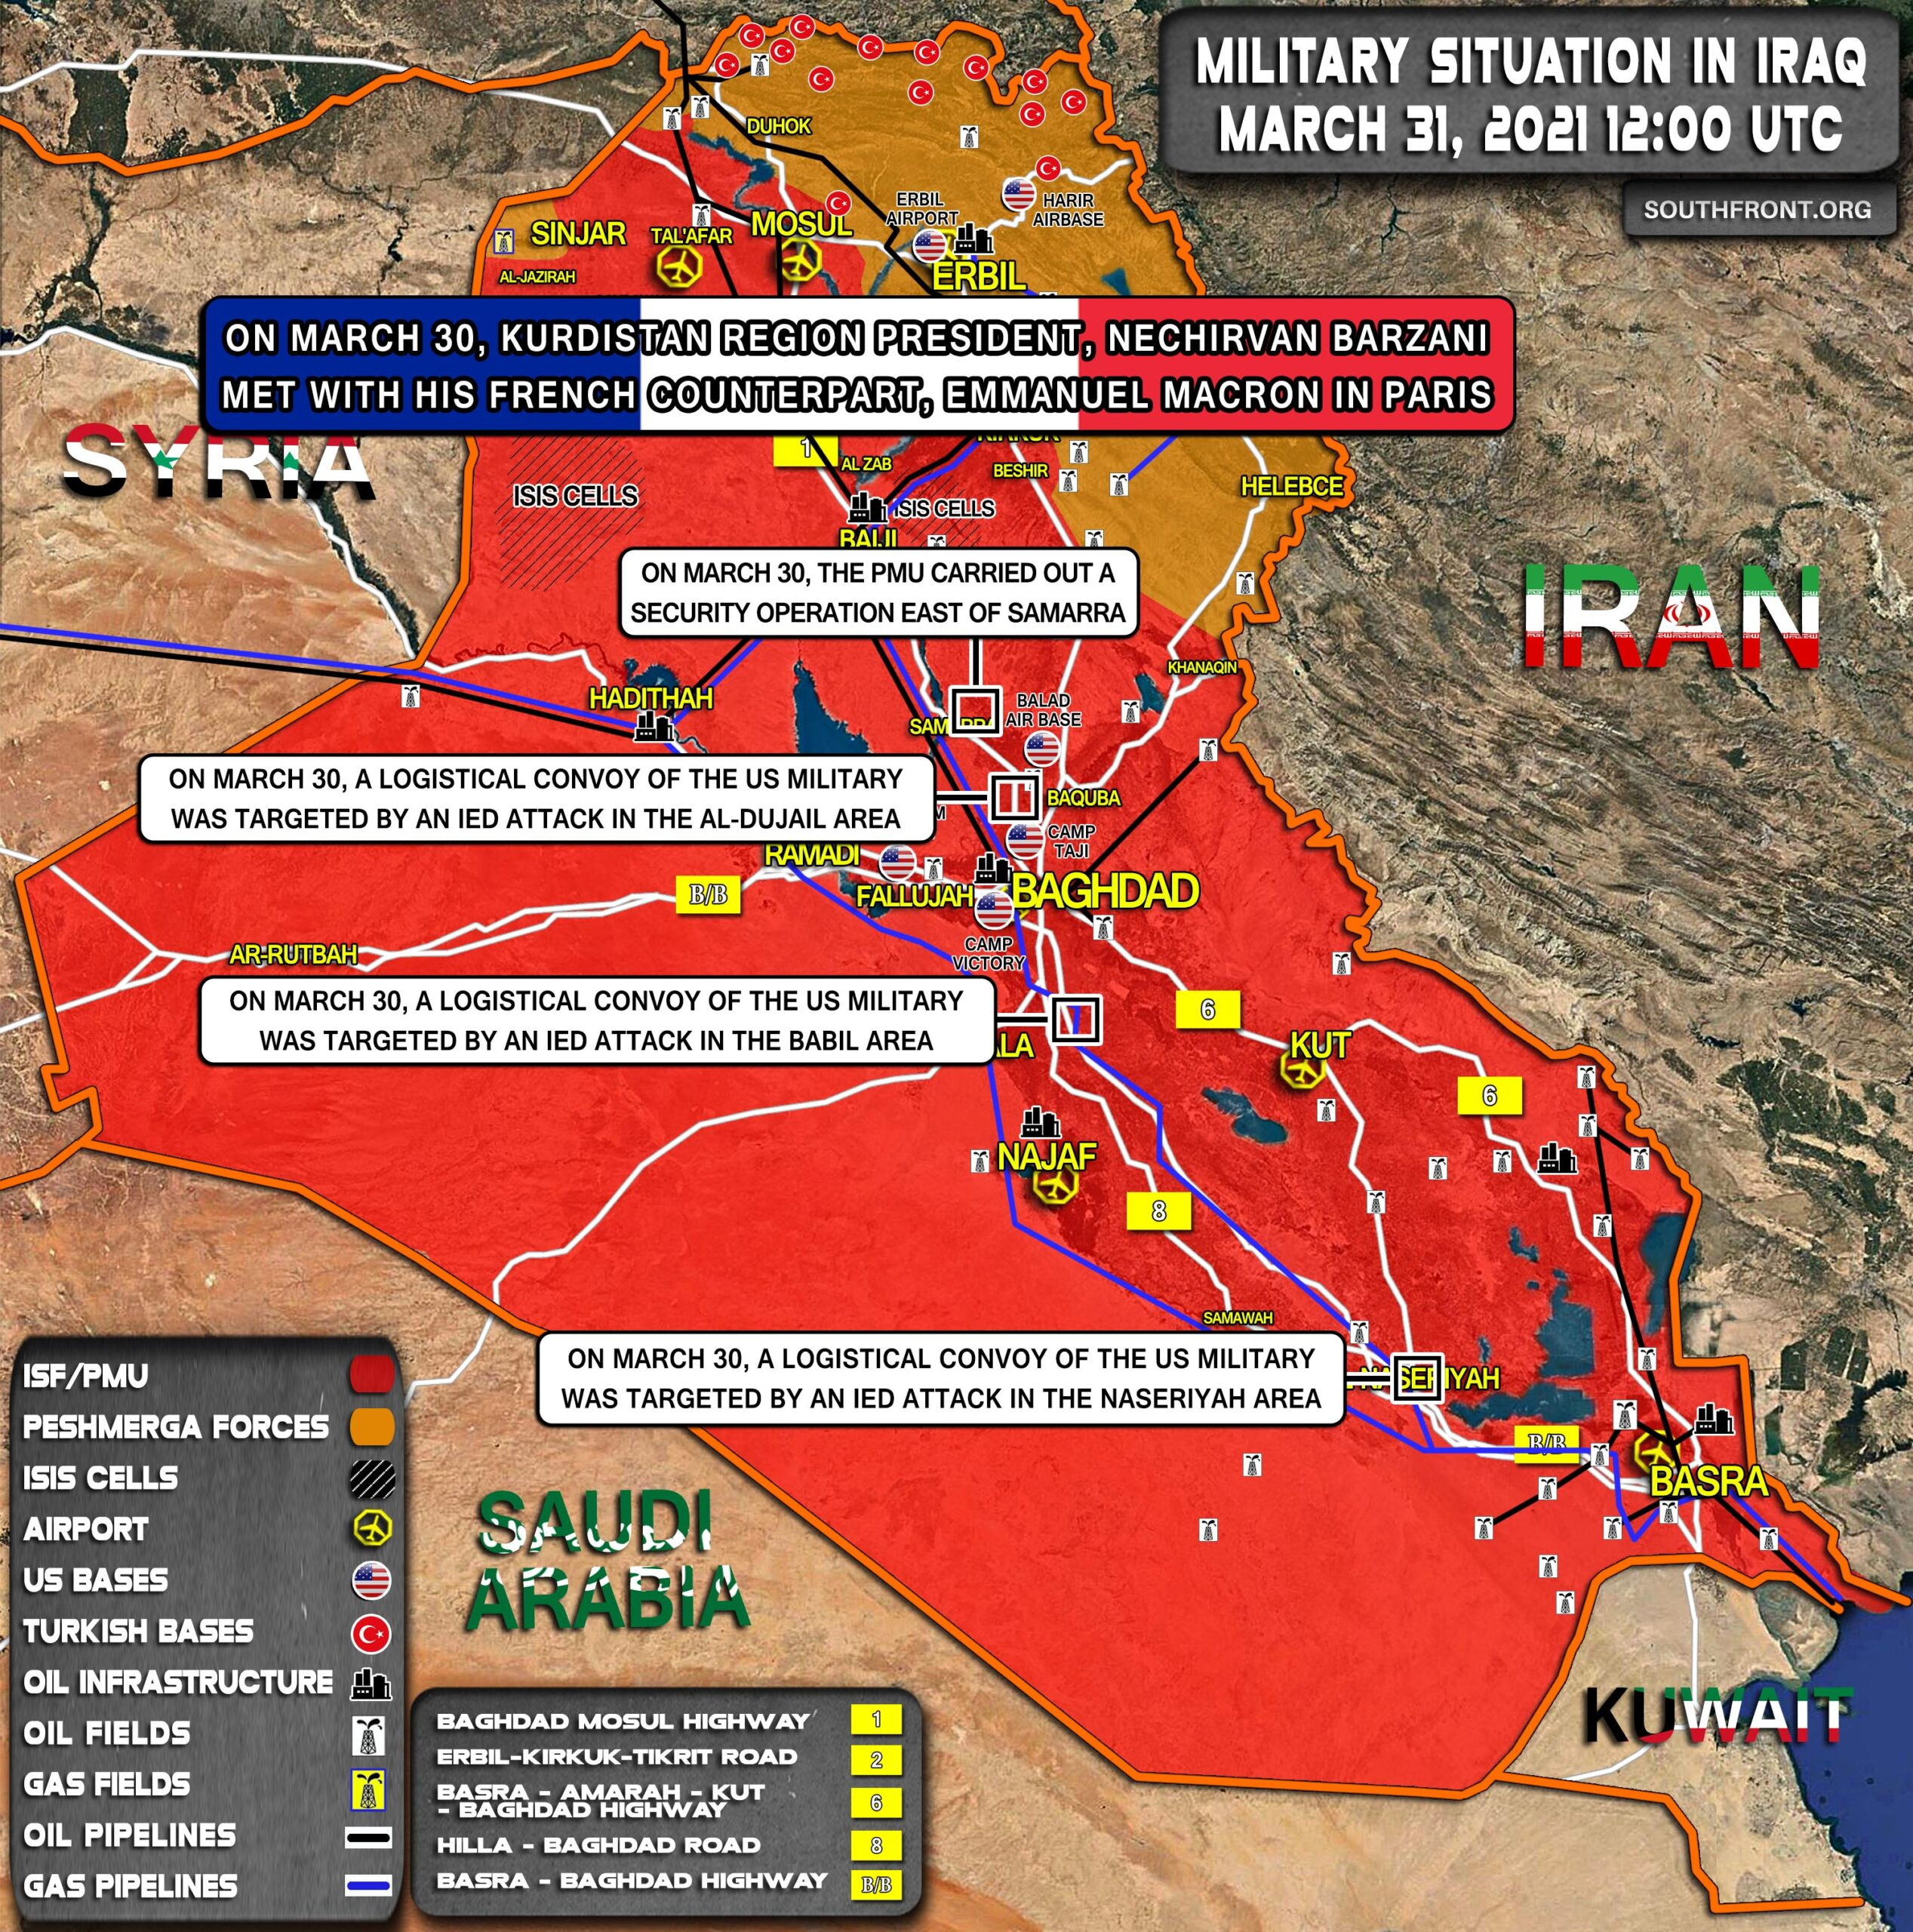 Military Situation In Iraq On March 31, 2021 (Map Update)